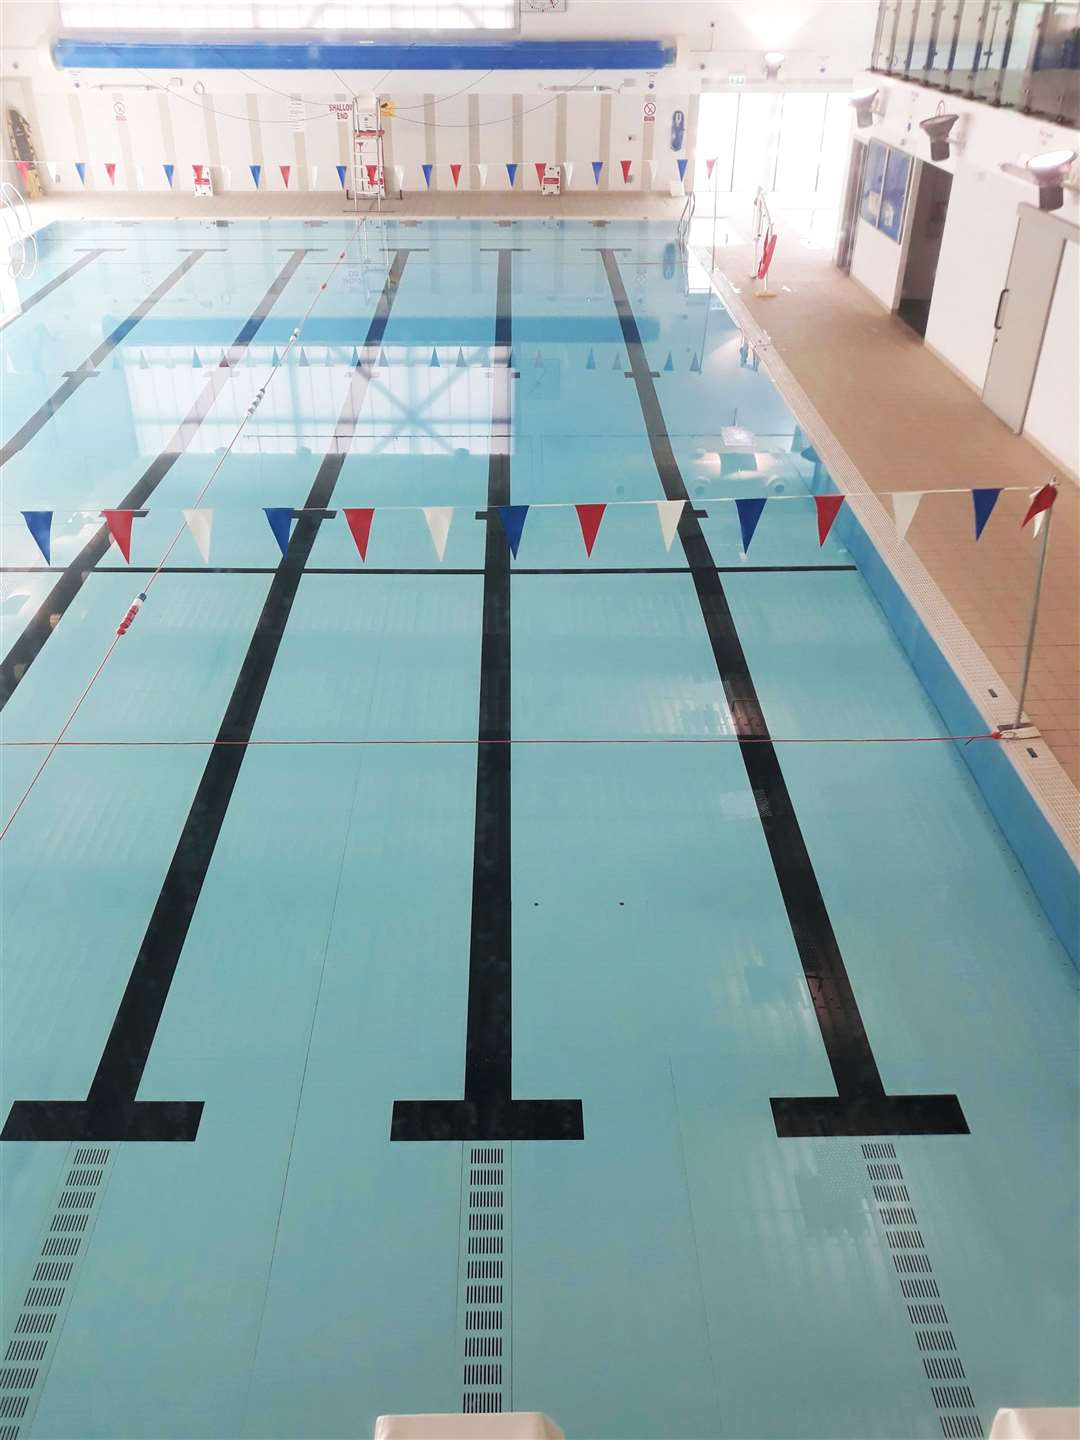 The swimming pool at the East Caithness Community Center at High Life Highland in Wick.